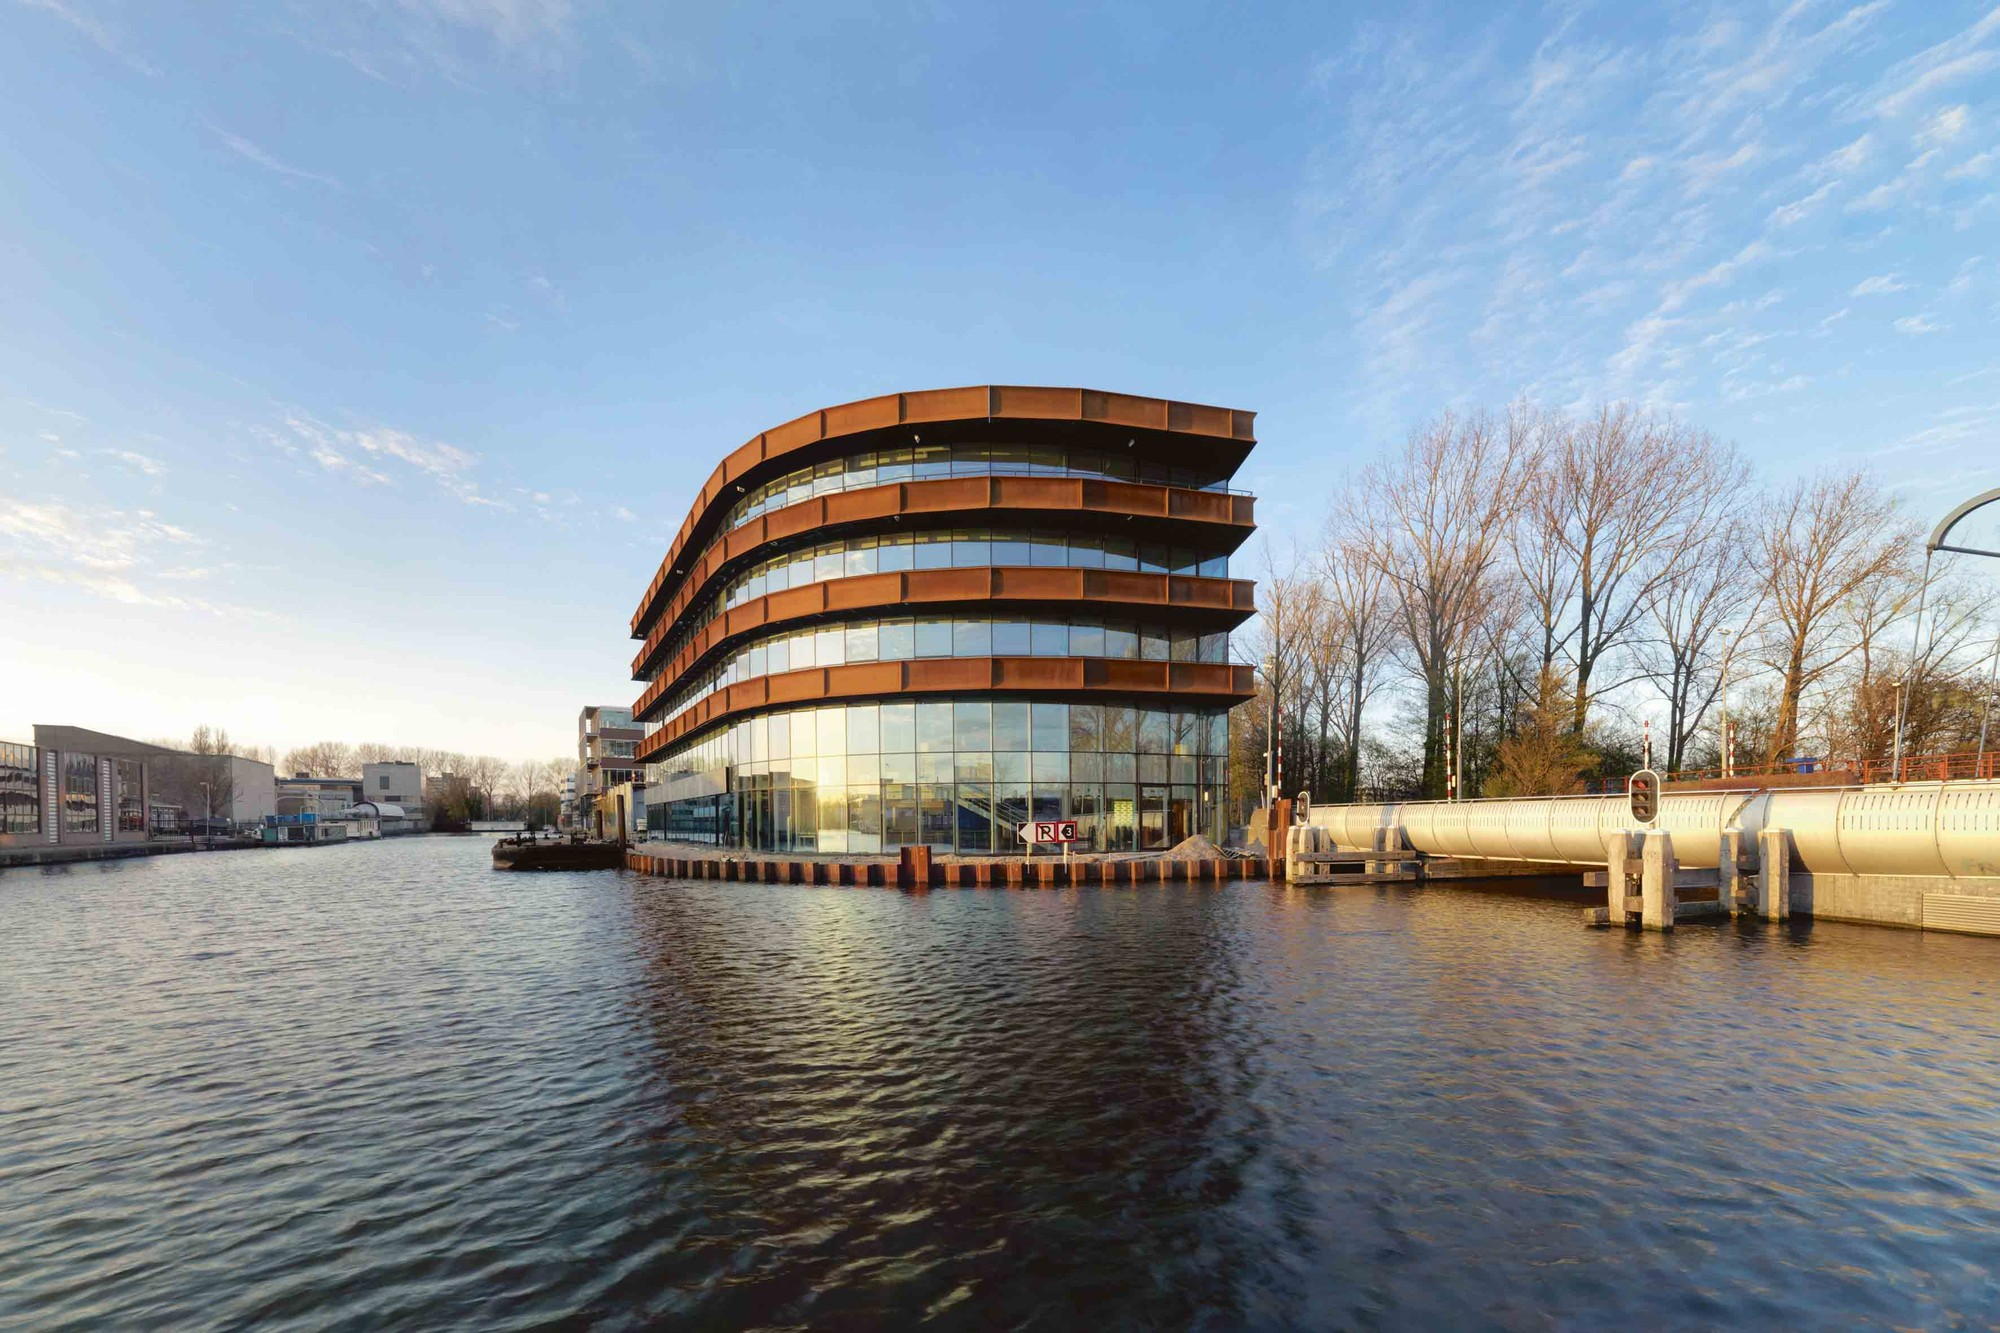 Tbwa Office Building / ZZDP Architecten, © Michel Kievits